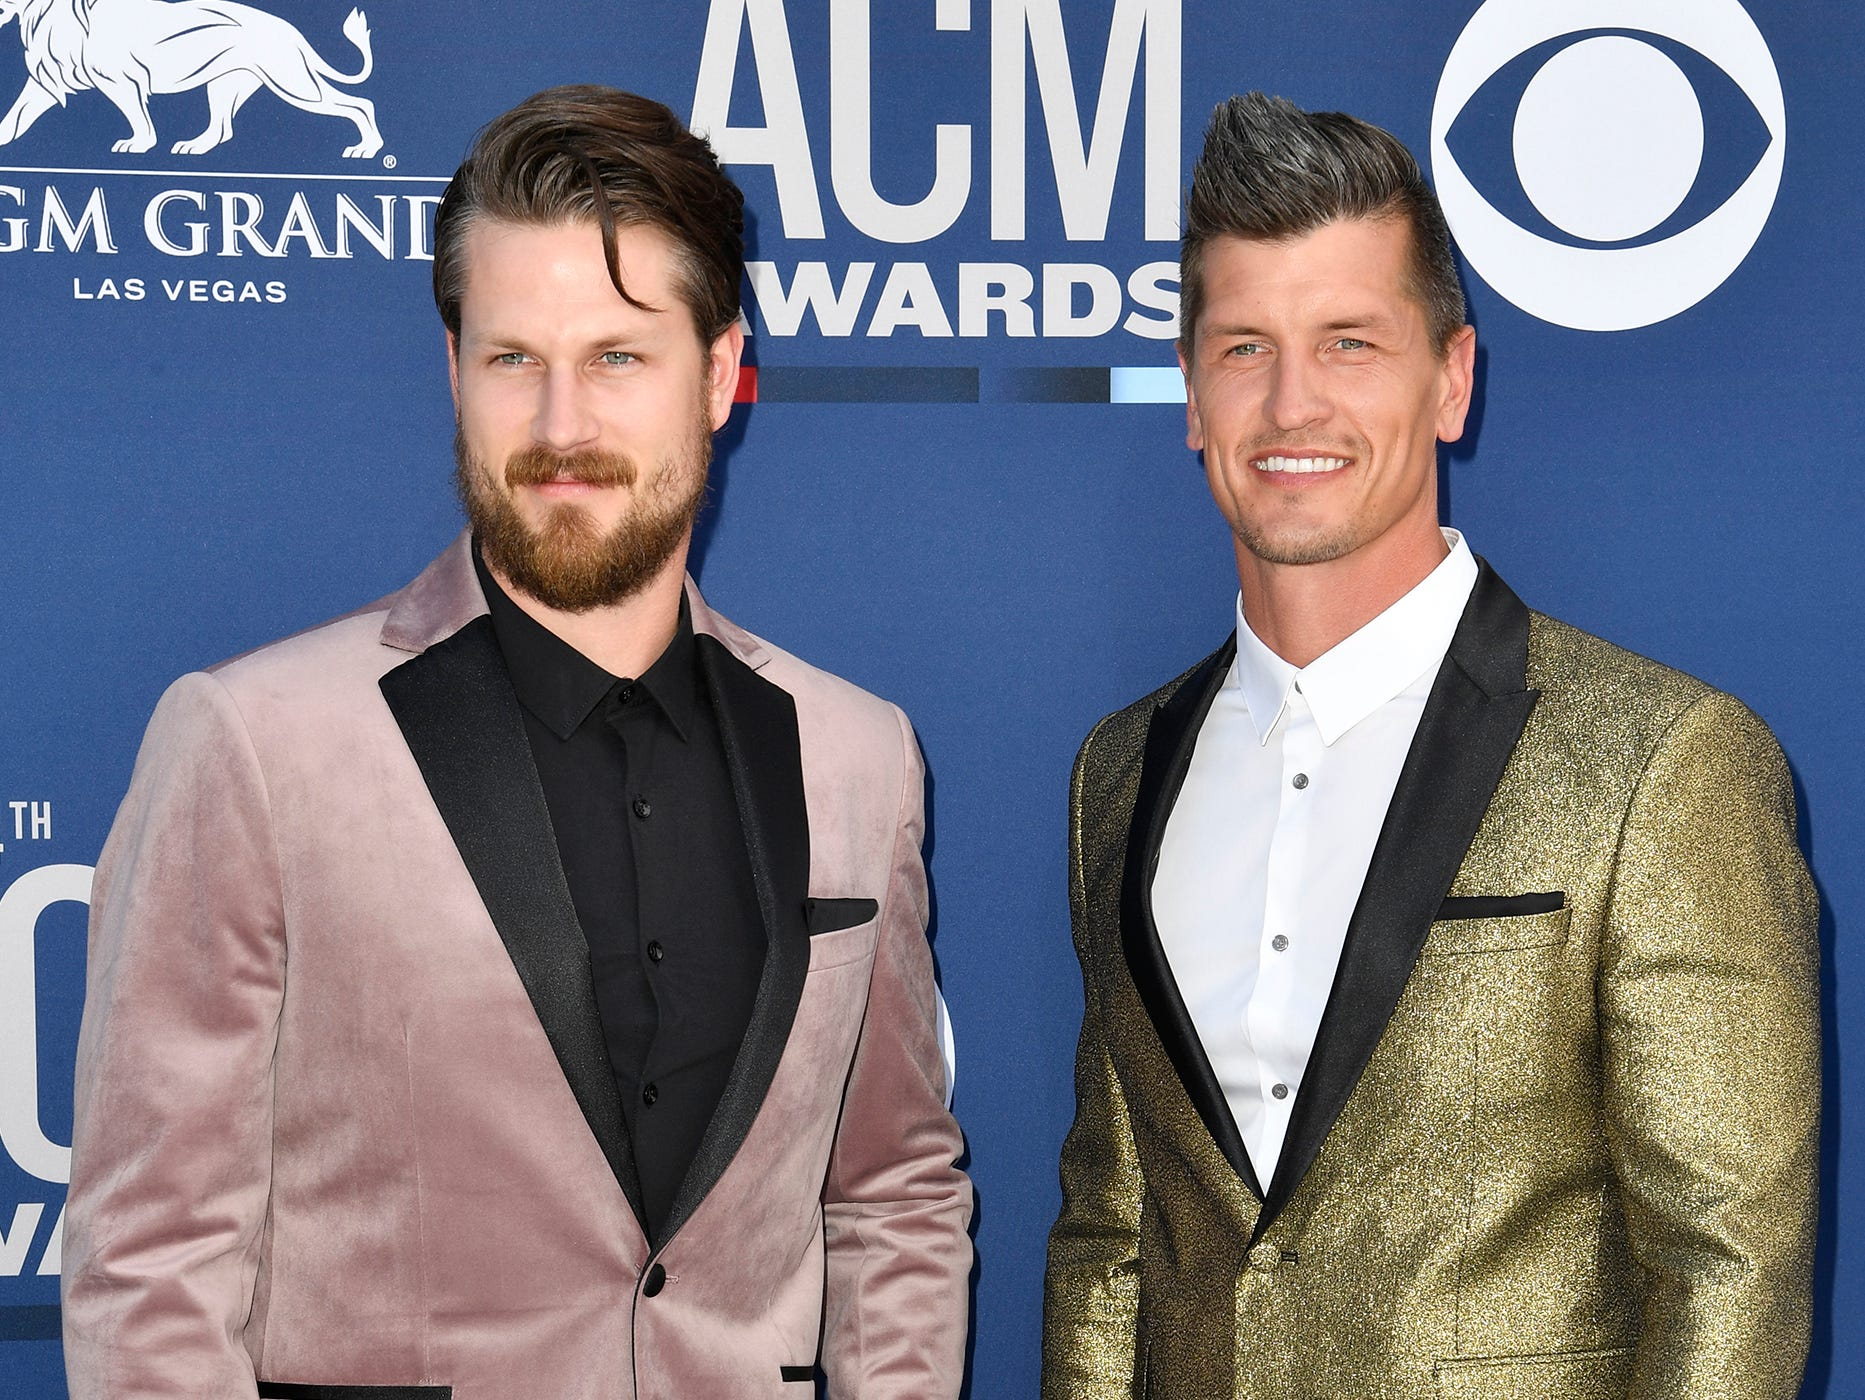 Curtis Rempel, left, and Brad Rempel of High Valley, walk the red carpet at the 54TH Academy of Country Music Awards Sunday, April 7, 2019, in Las Vegas, Nev.